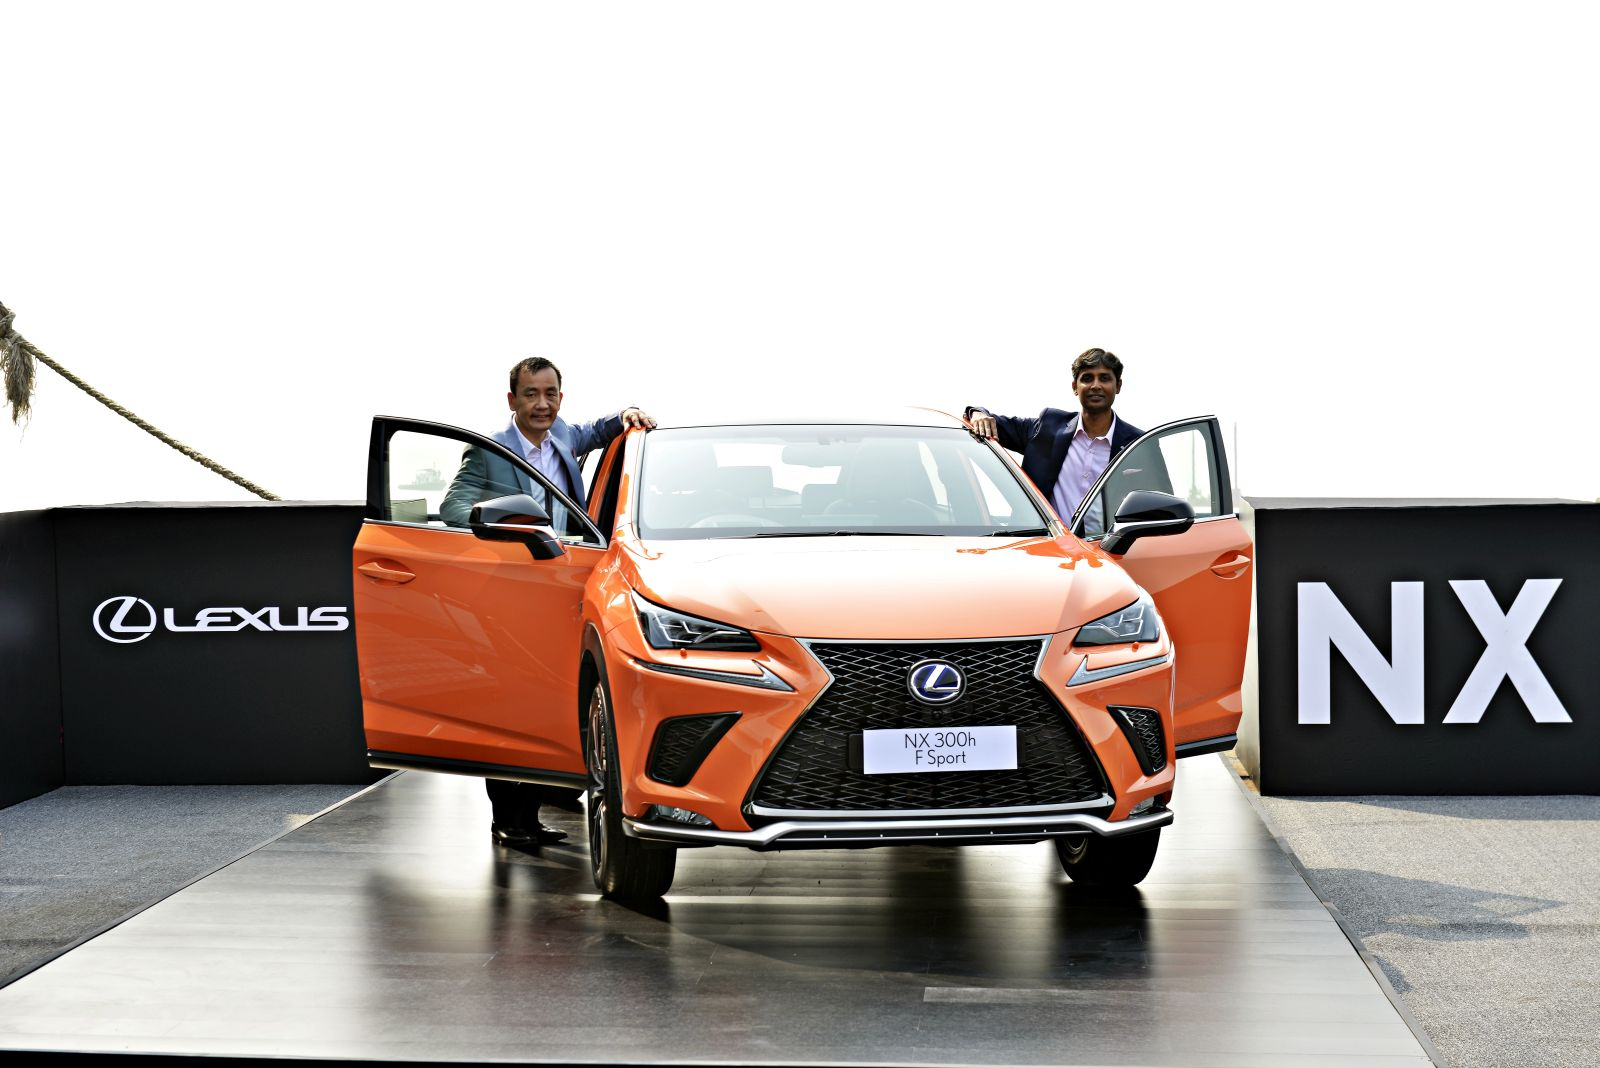 Lexus unveils latest hybrid electric vehicle NX300H in Mumbai